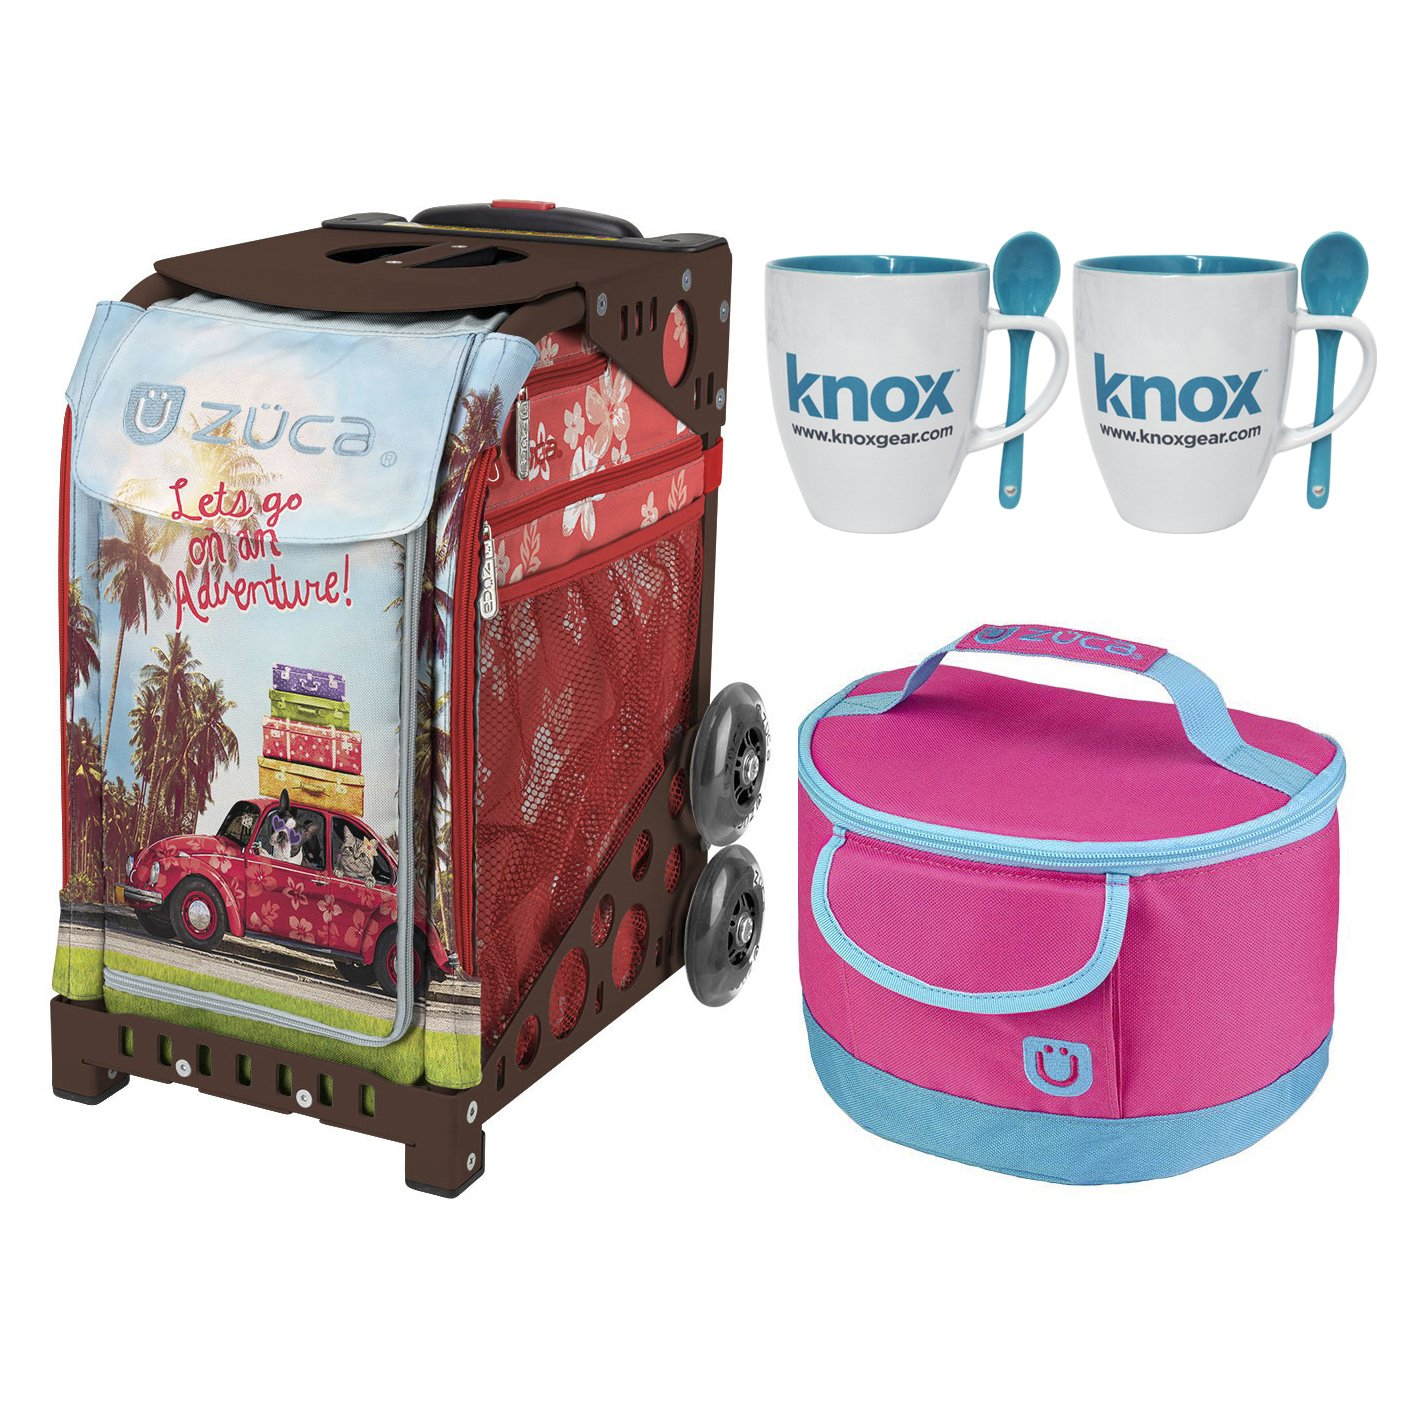 Zuca Road Trip Sport Insert Bag with Zuca Frame, Matching Lunch box and 2 Coffee Mugs(Dark Brown Frame)